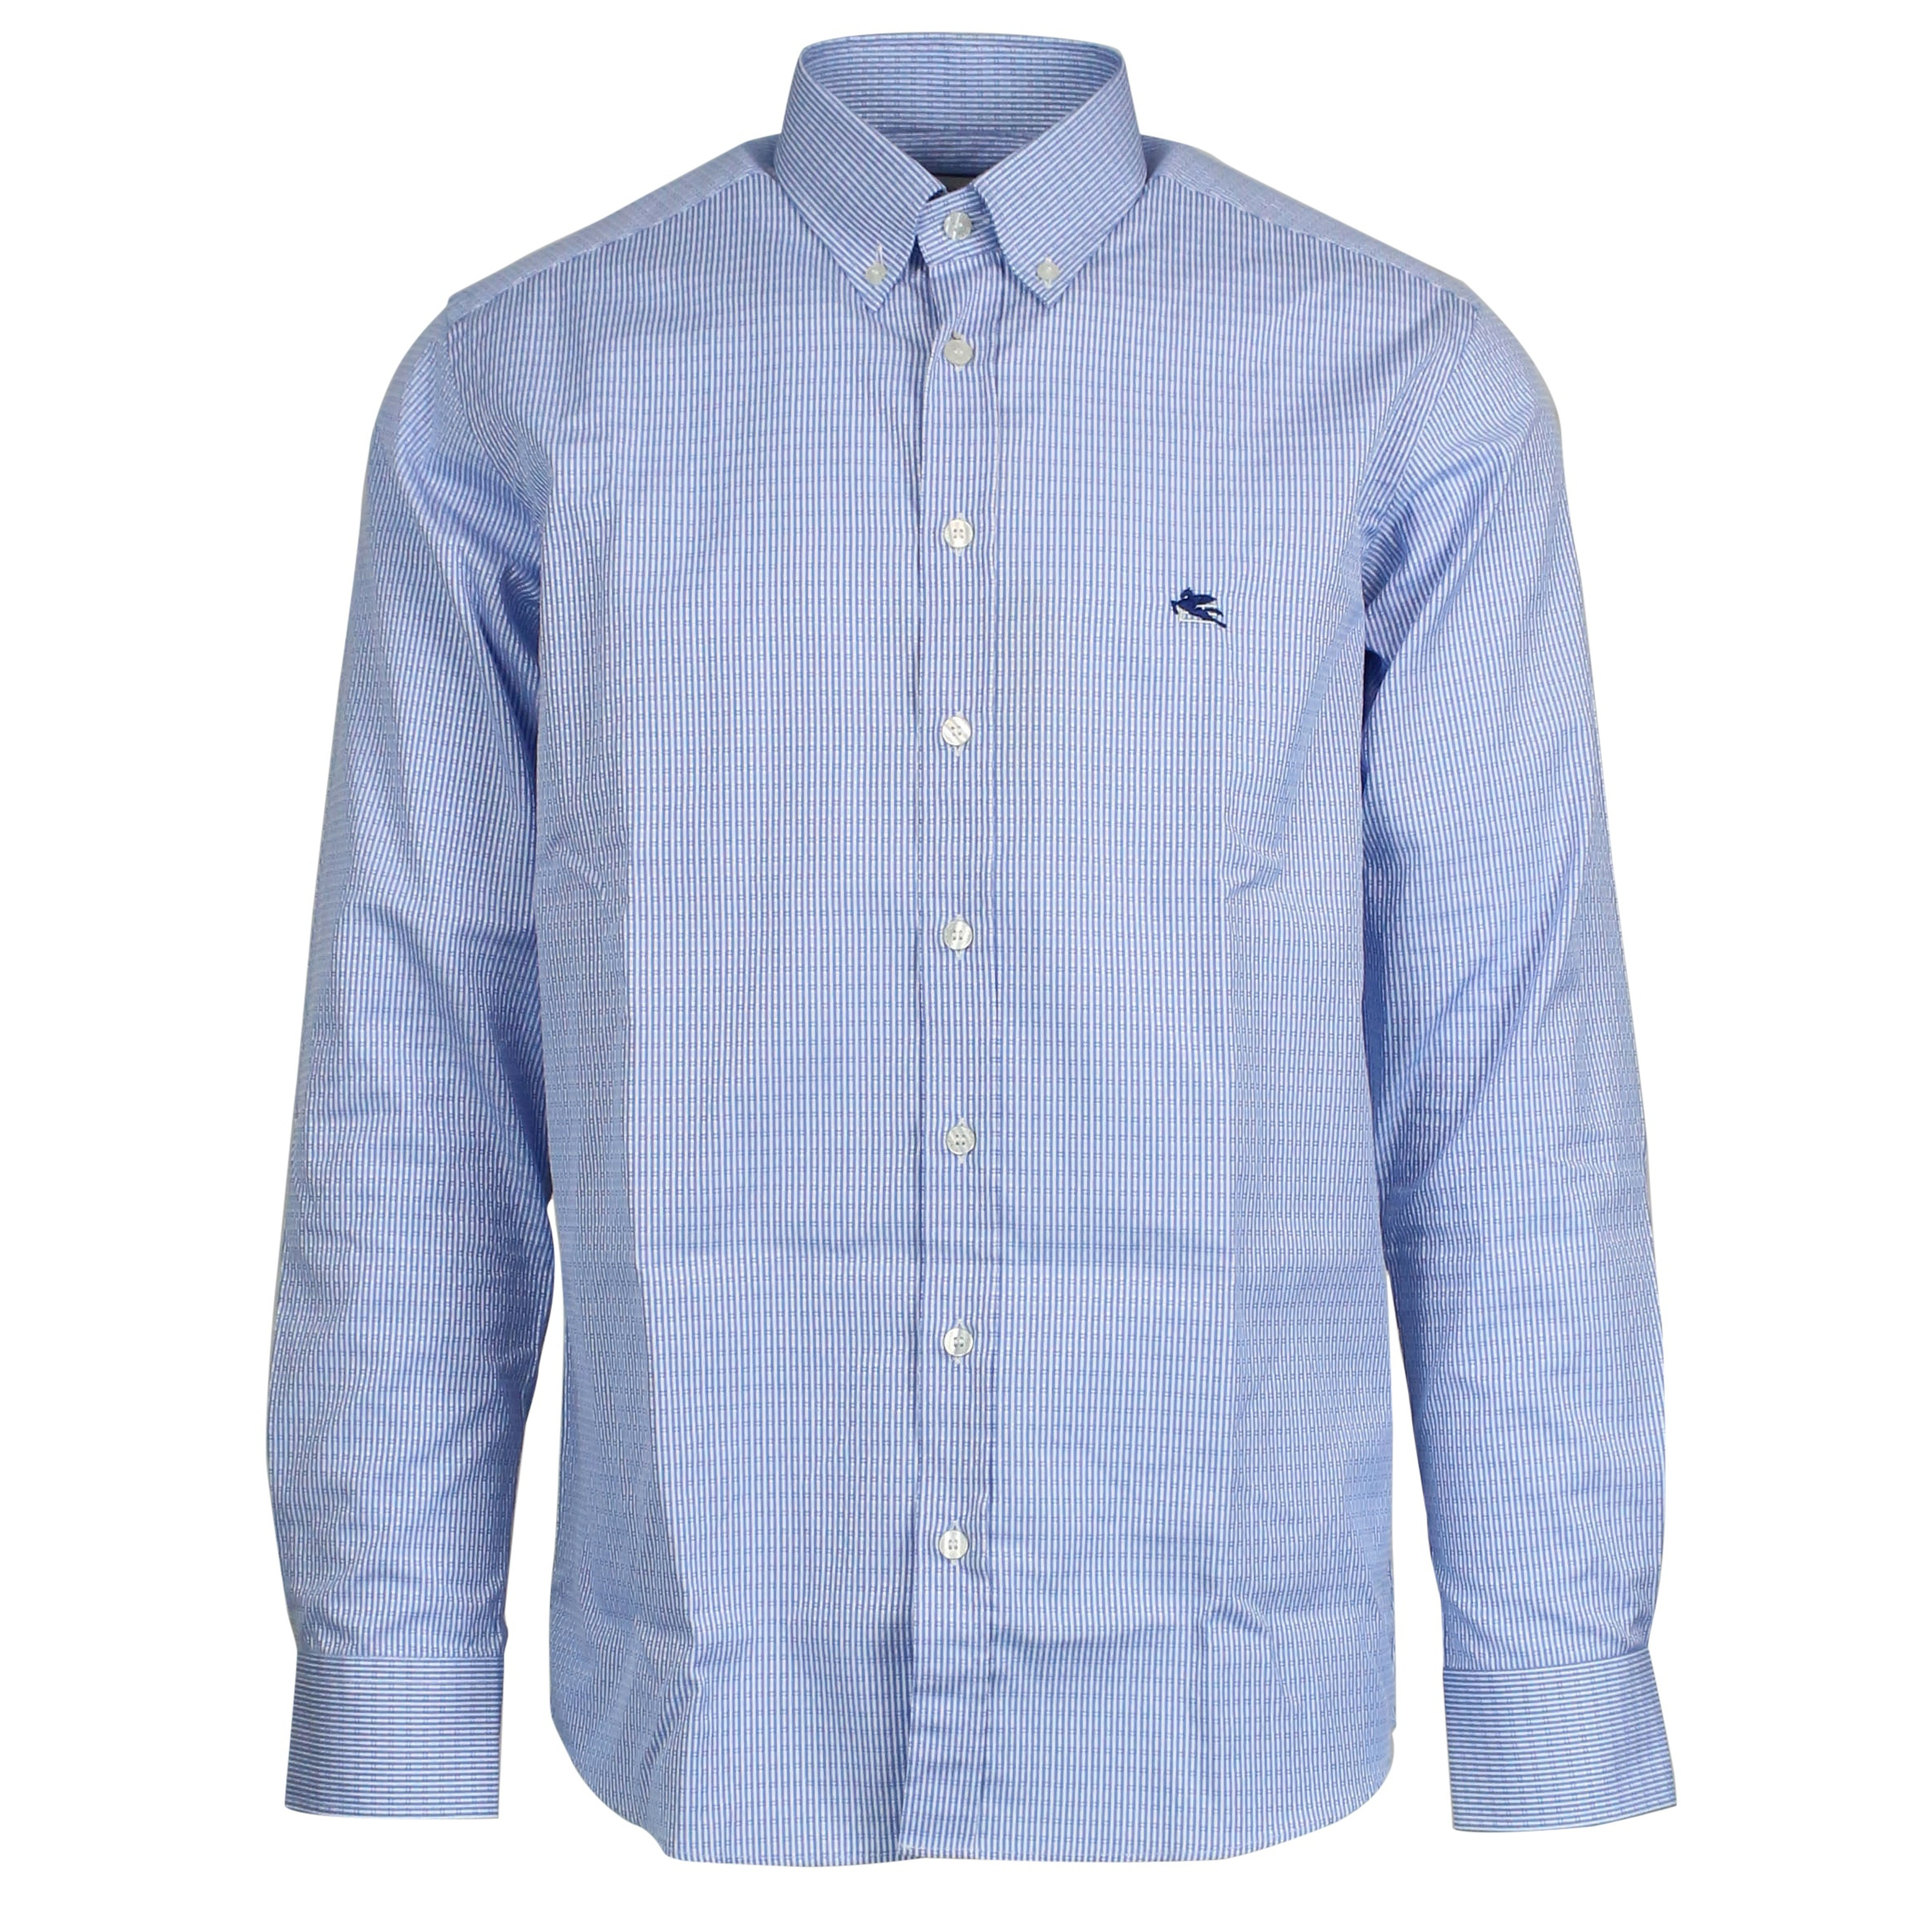 finest selection 04b40 f35ac Camicia regular fit con logo